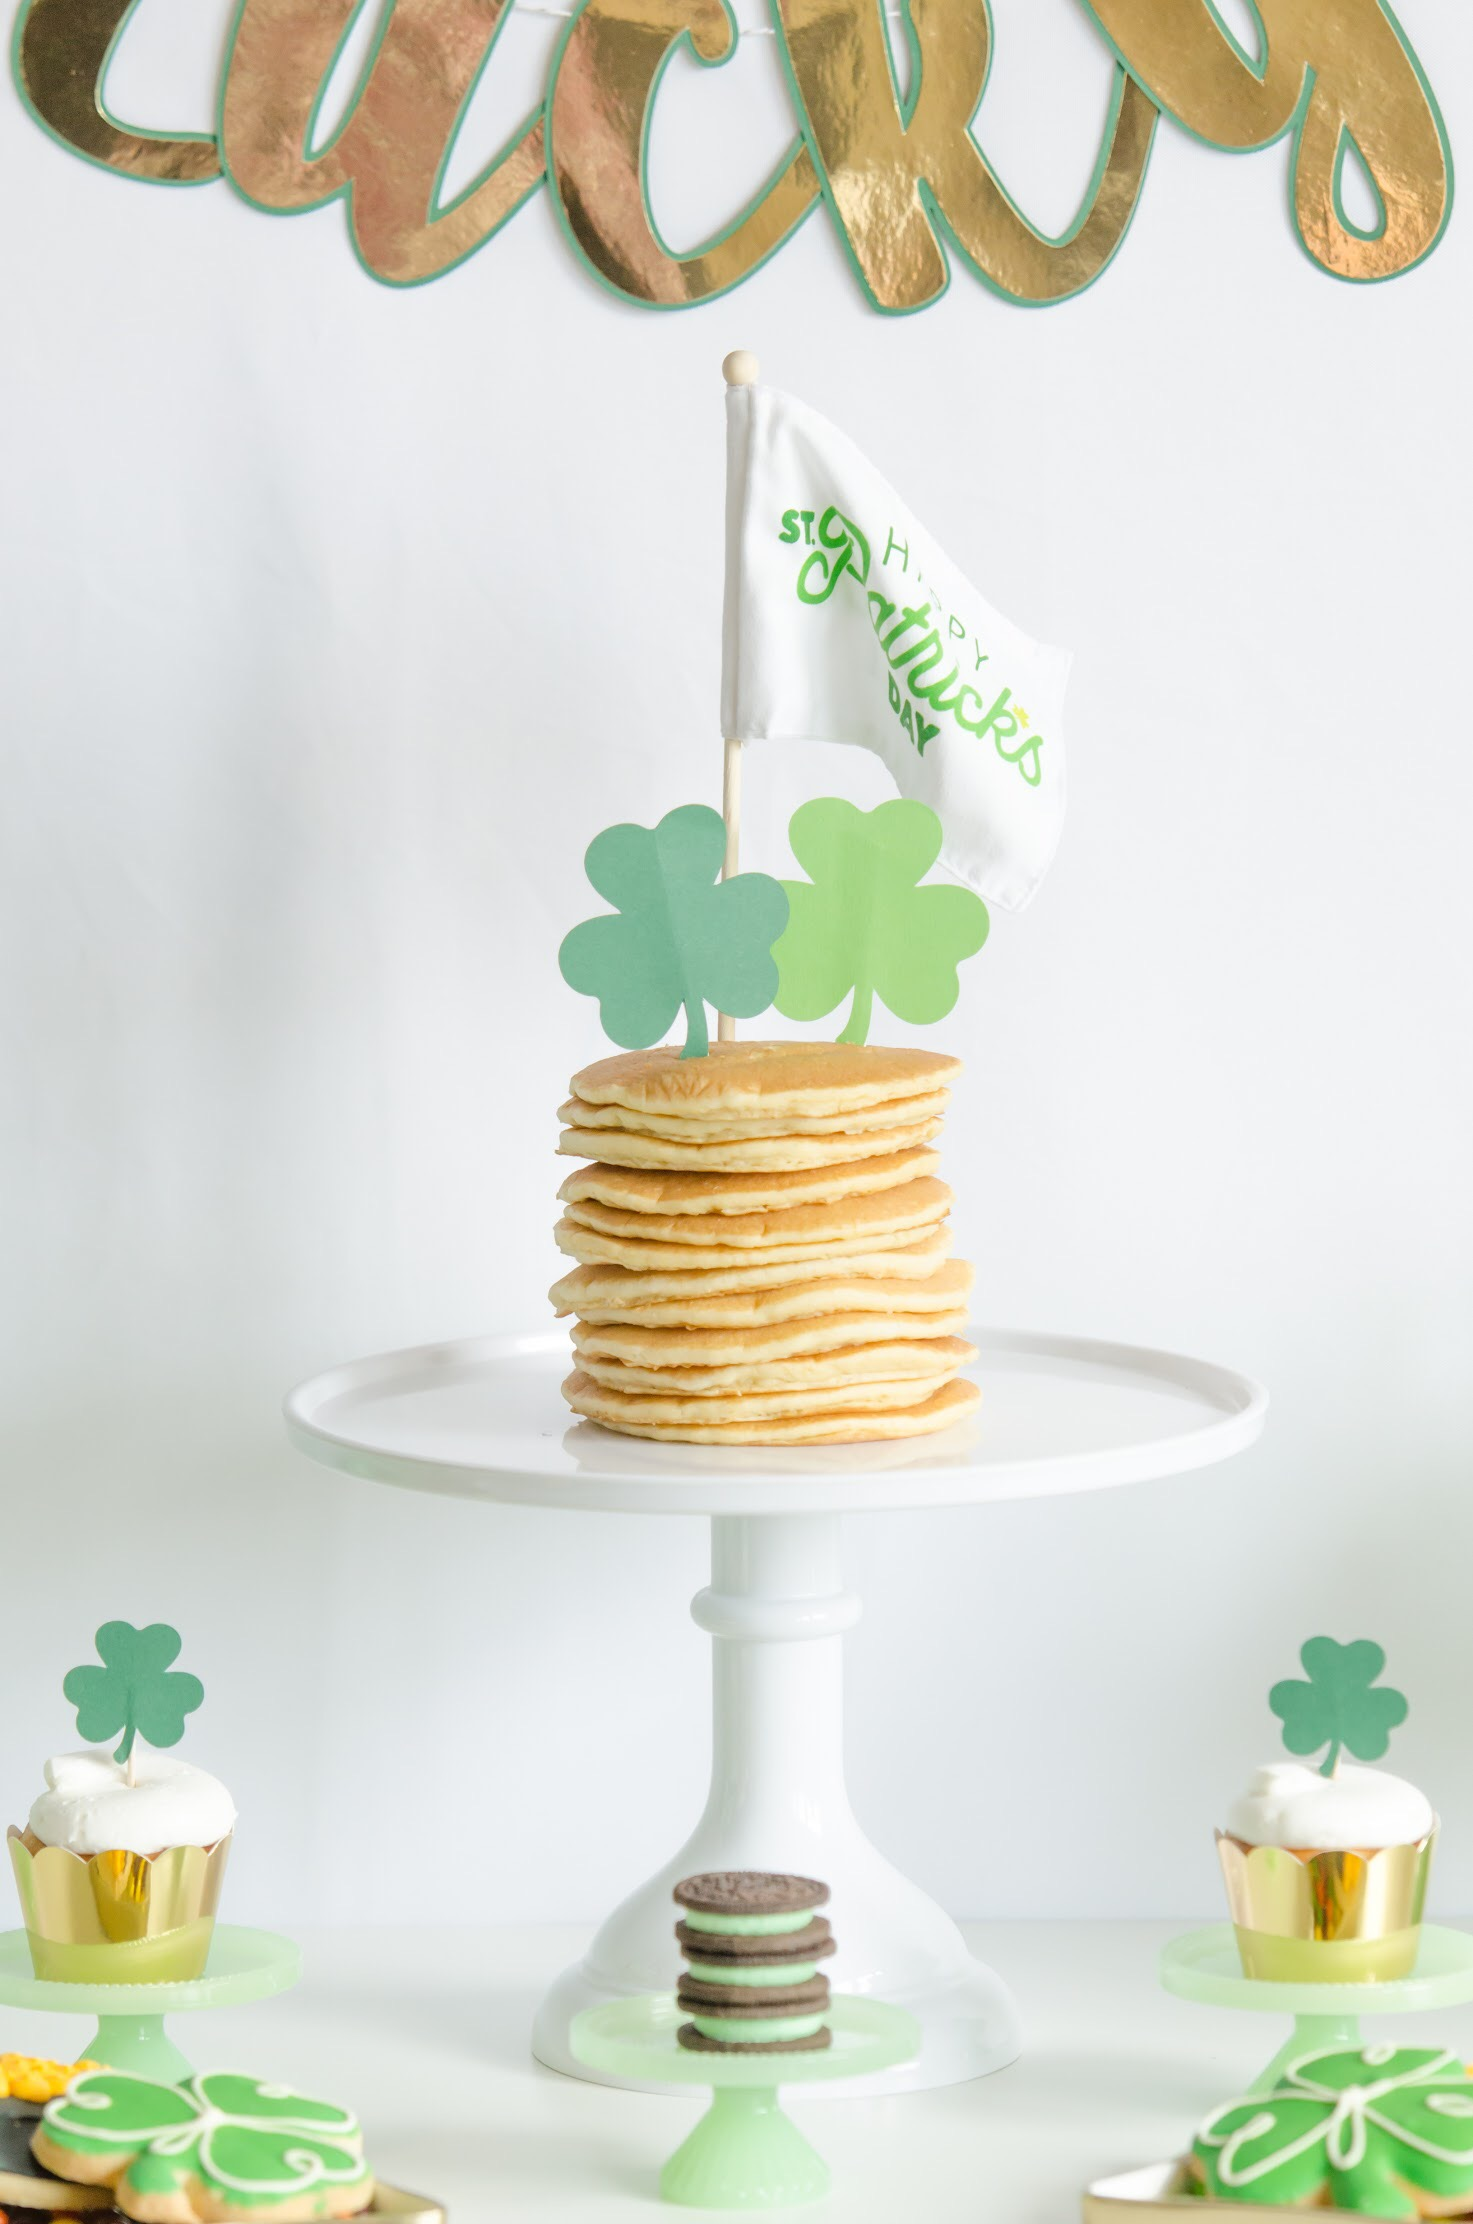 "Saint Patricks Day Breakfast Recipe: serve stacked pancakes on a cake stand, then add shamrock shaped cupcake toppers with a fun mini flag that says ""Happy St. Patrick's Day"". Via Mint Event Design www.minteventdesign.com #partyideas #partydecorations #breakfastfood #saintpatricksday #stpatricksday #pancakes"